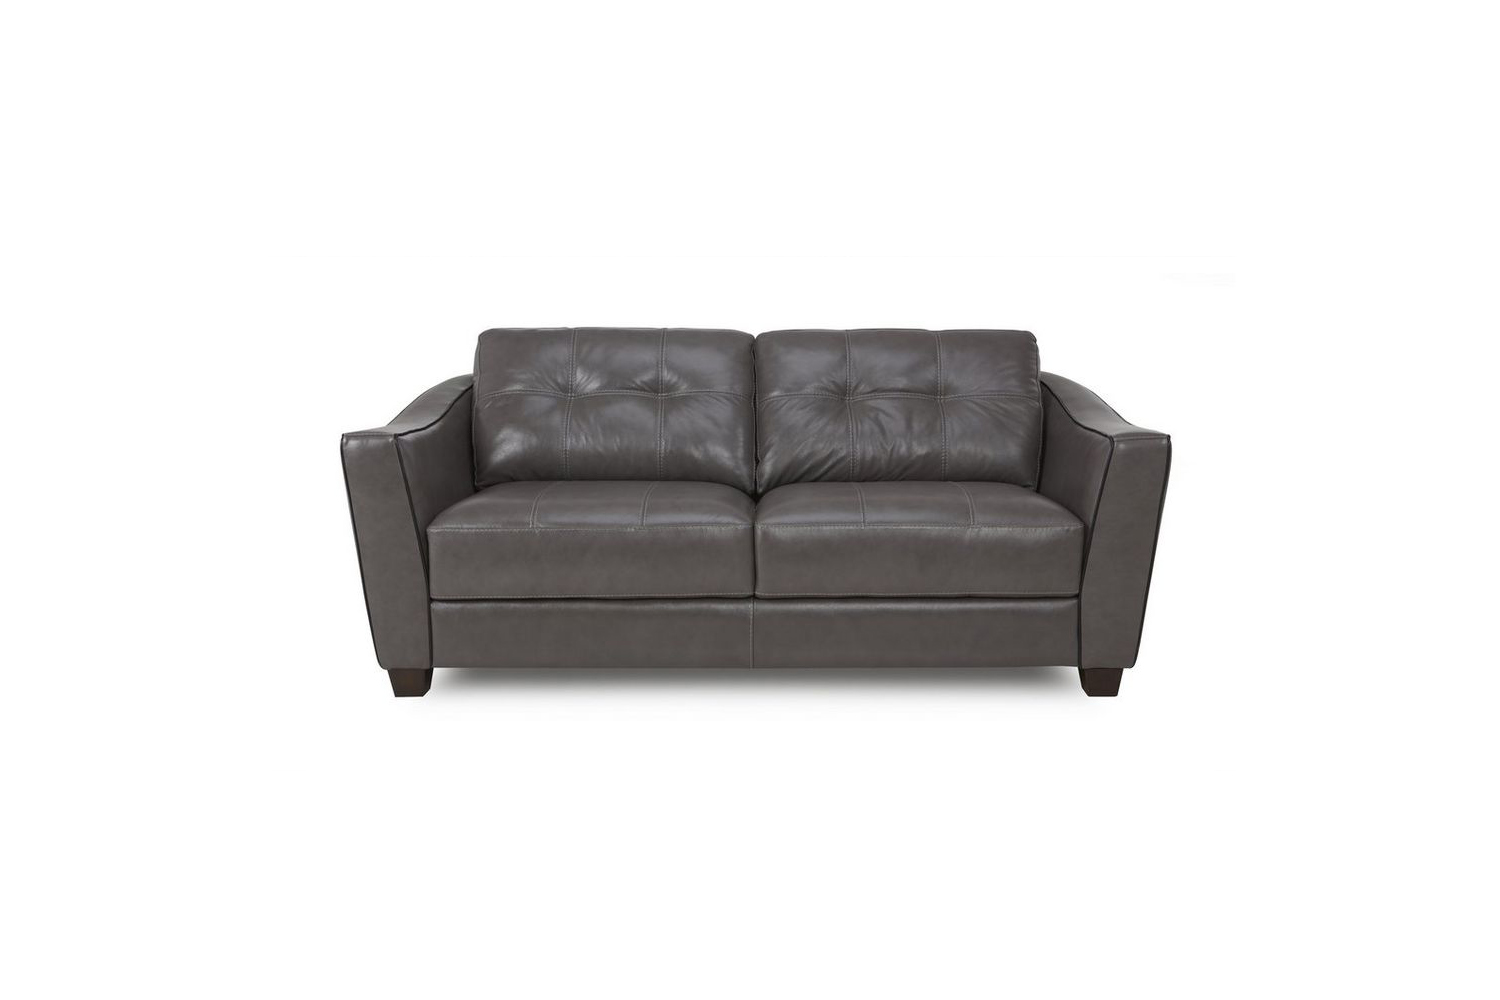 Sofa Uk Finance Karak Leather Sofa Comfyland